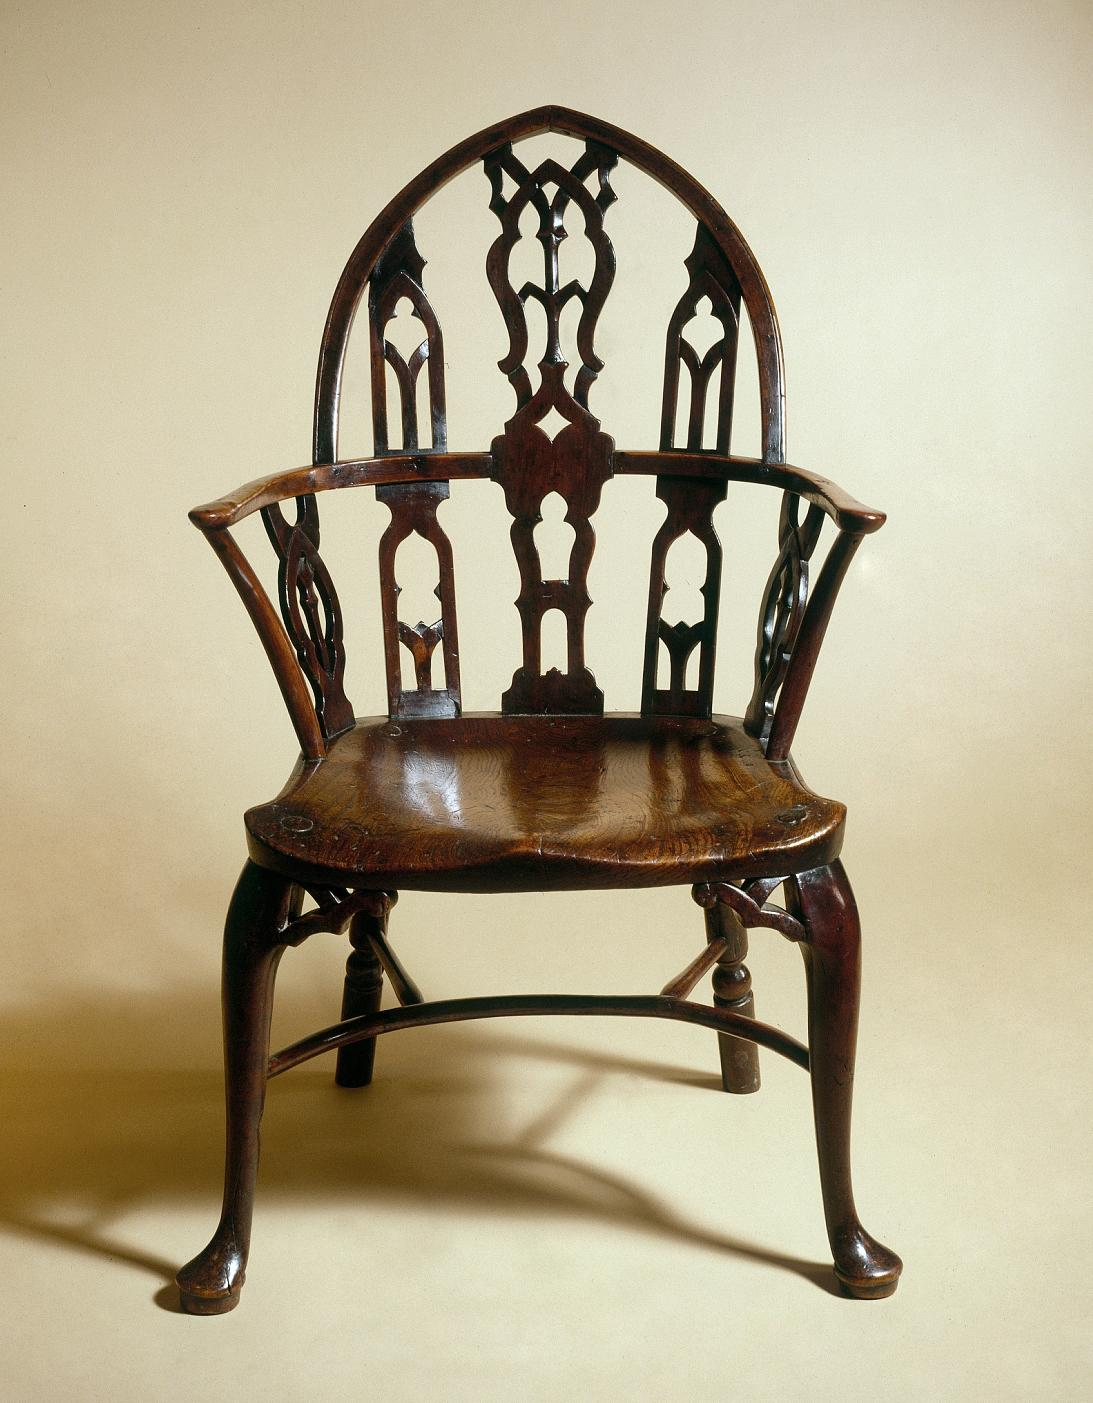 The dress agency horncastle - Download Yew_ Elm_gothic_windsor_chair_c1760_01a